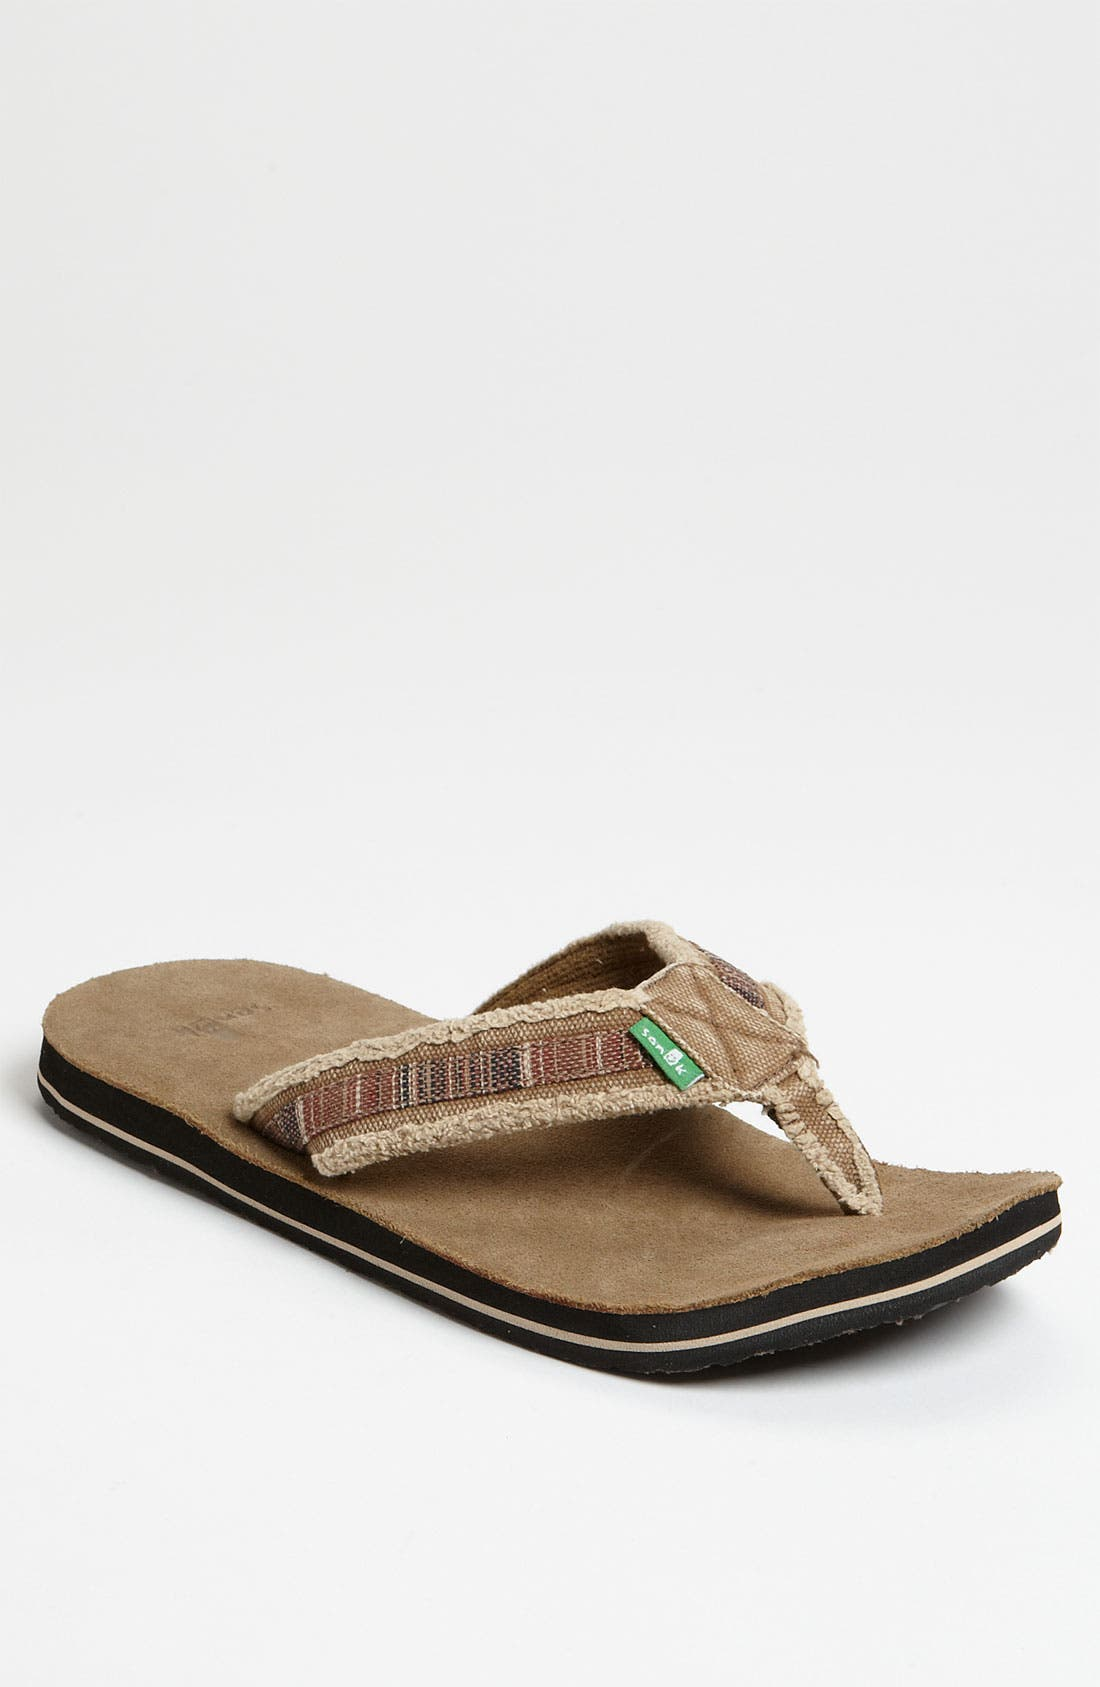 Alternate Image 1 Selected - Sanuk 'Fraid So' Flip Flop